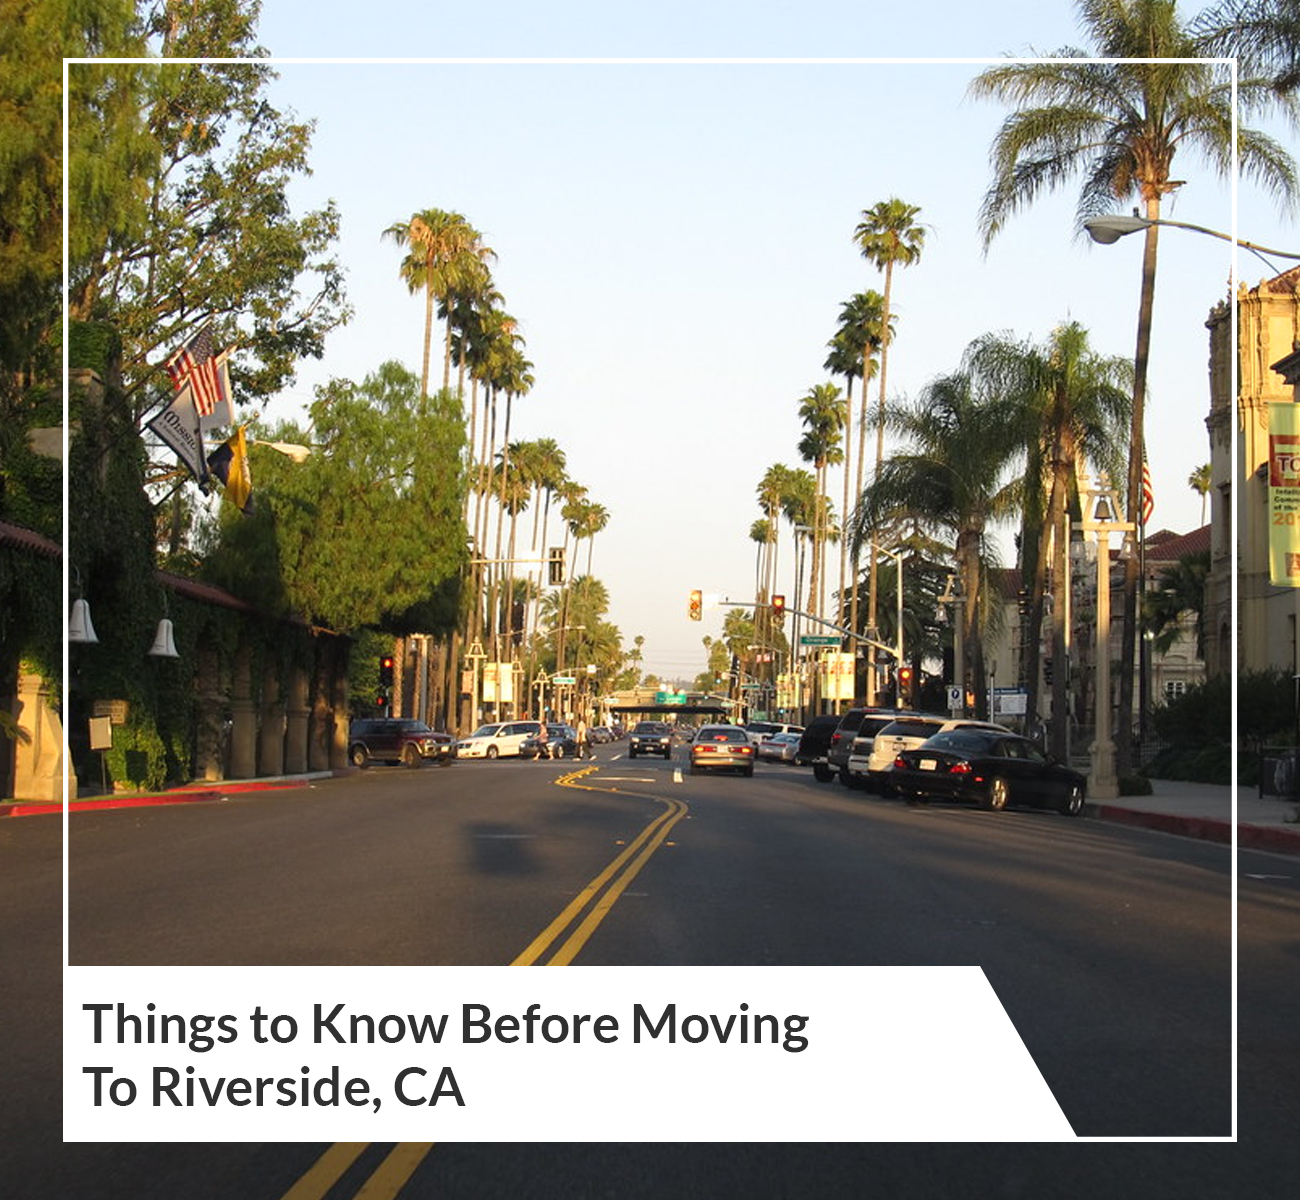 Things To Know Before Moving To Riverside, CA